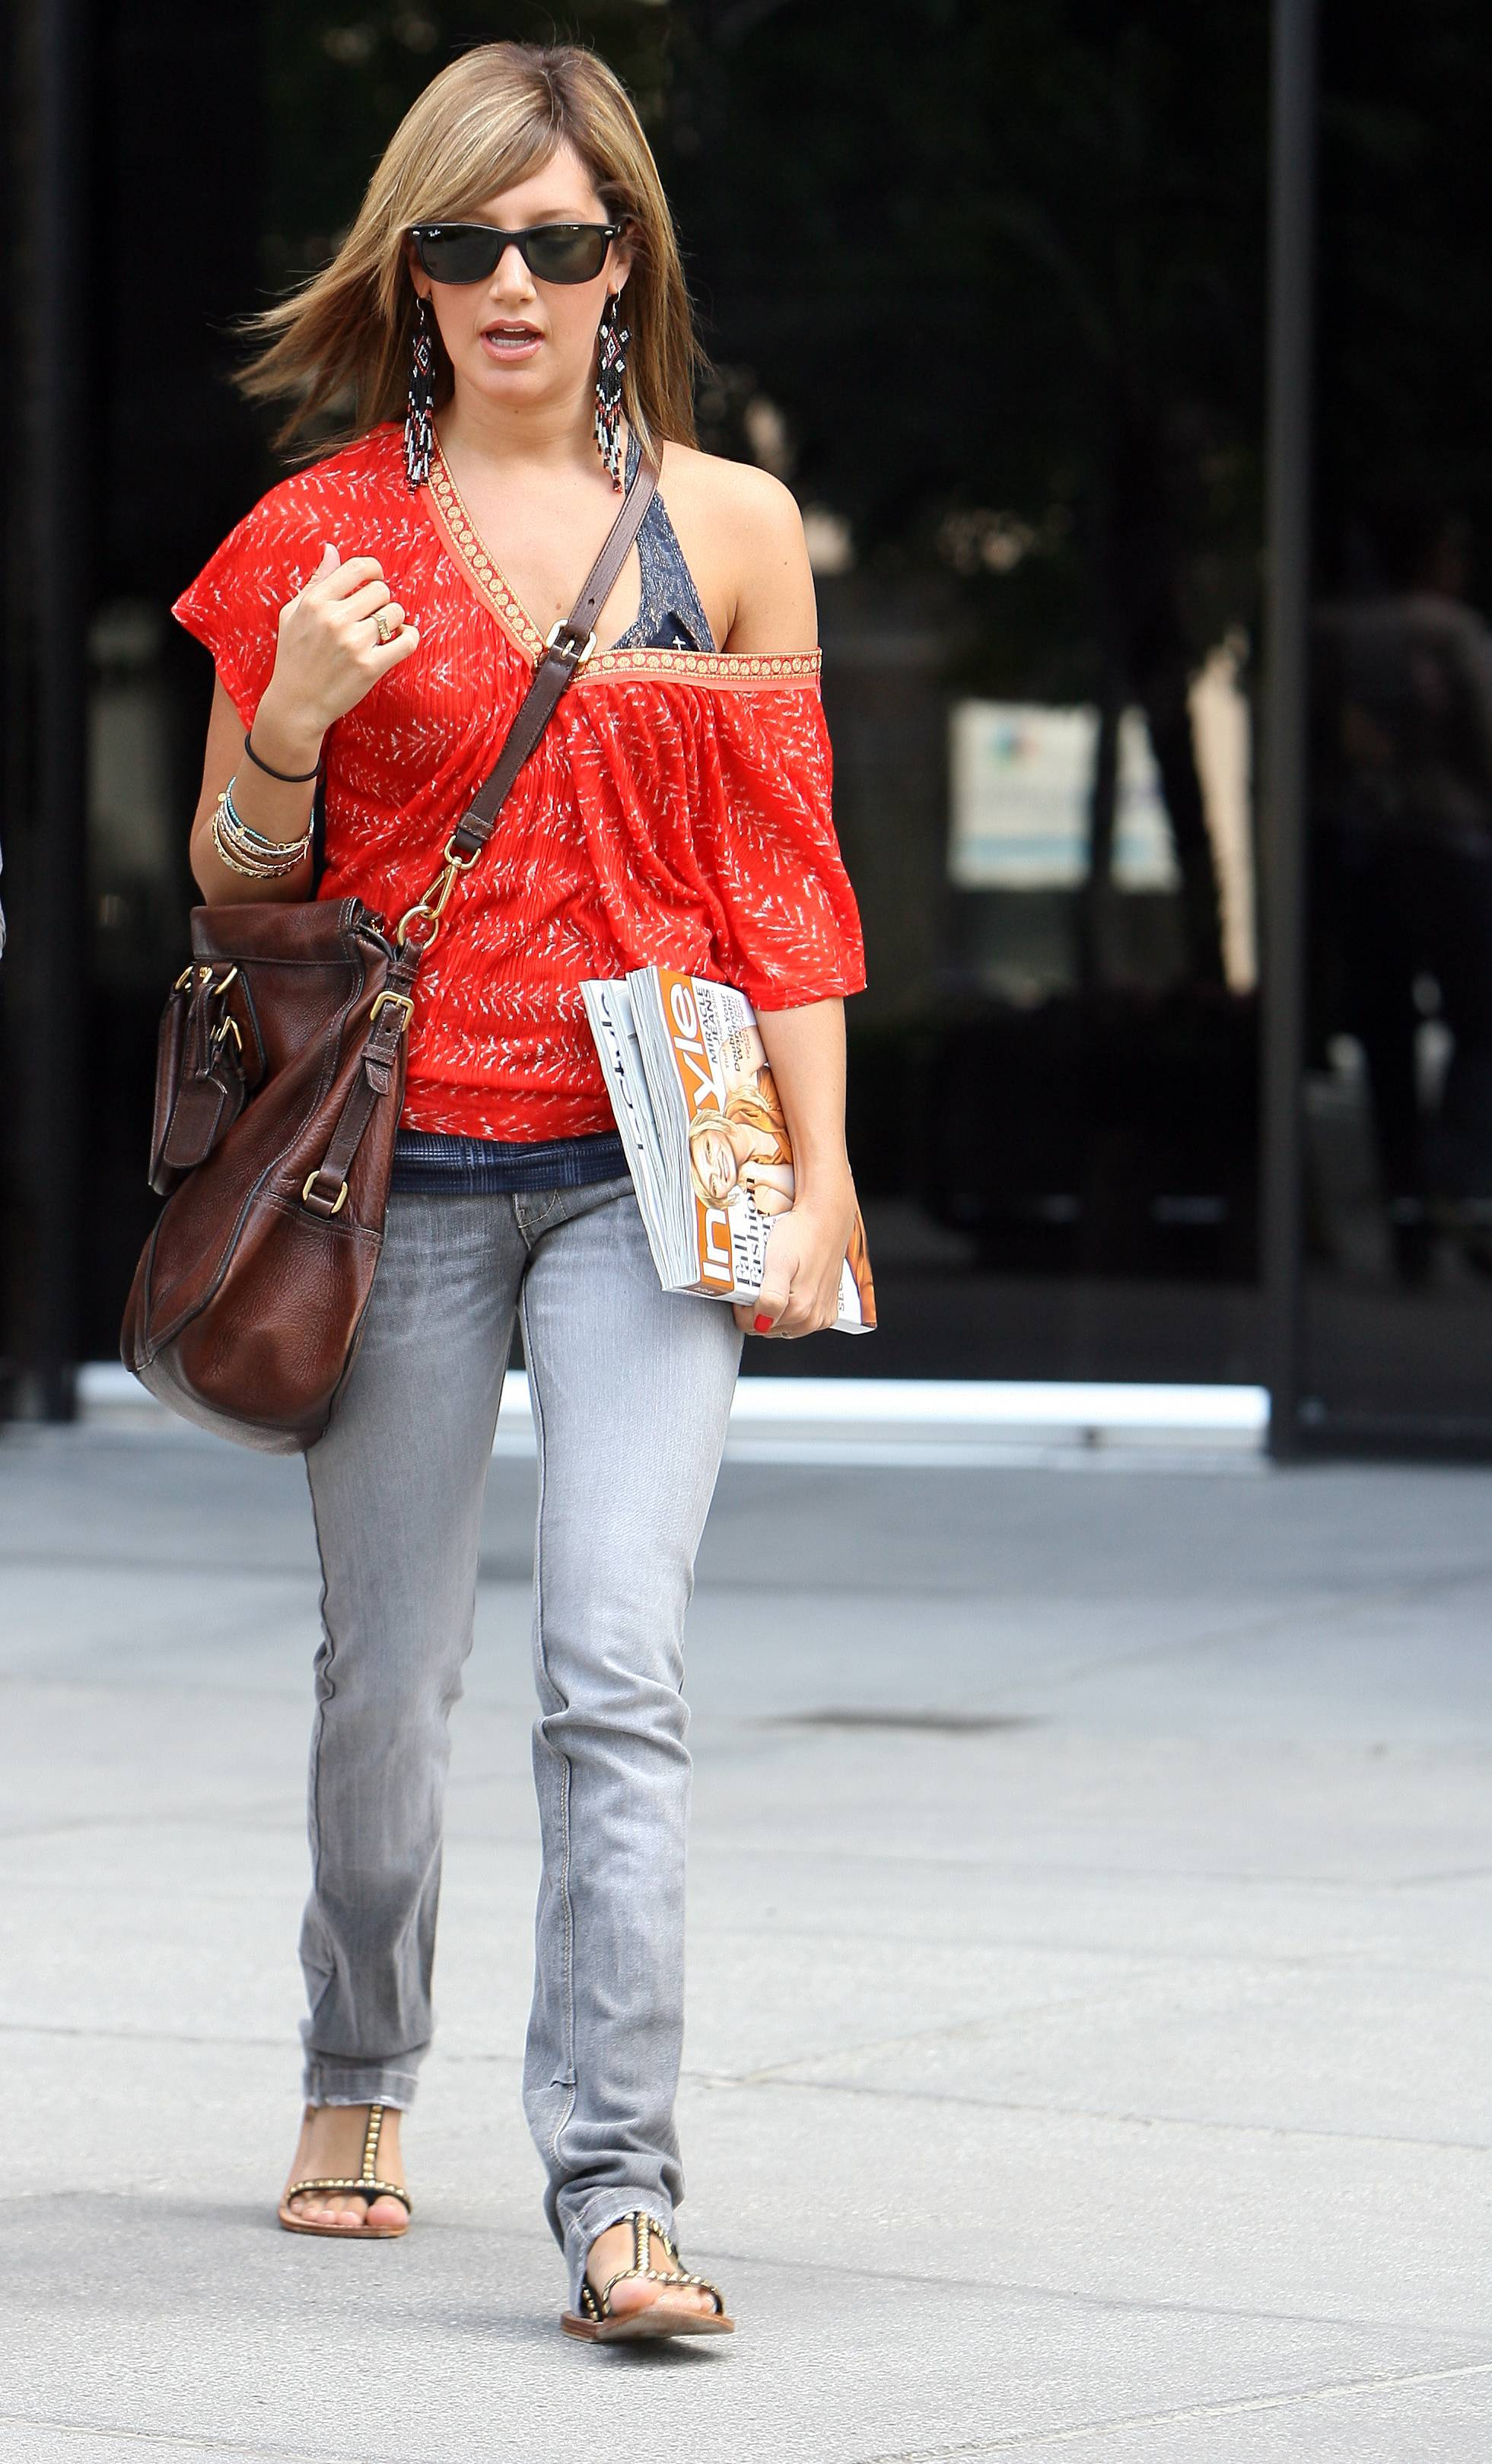 98785_Preppie_Ashley_Tisdale_with_a_new_look_in_L.A._08.27.08_431_122_451lo.jpg